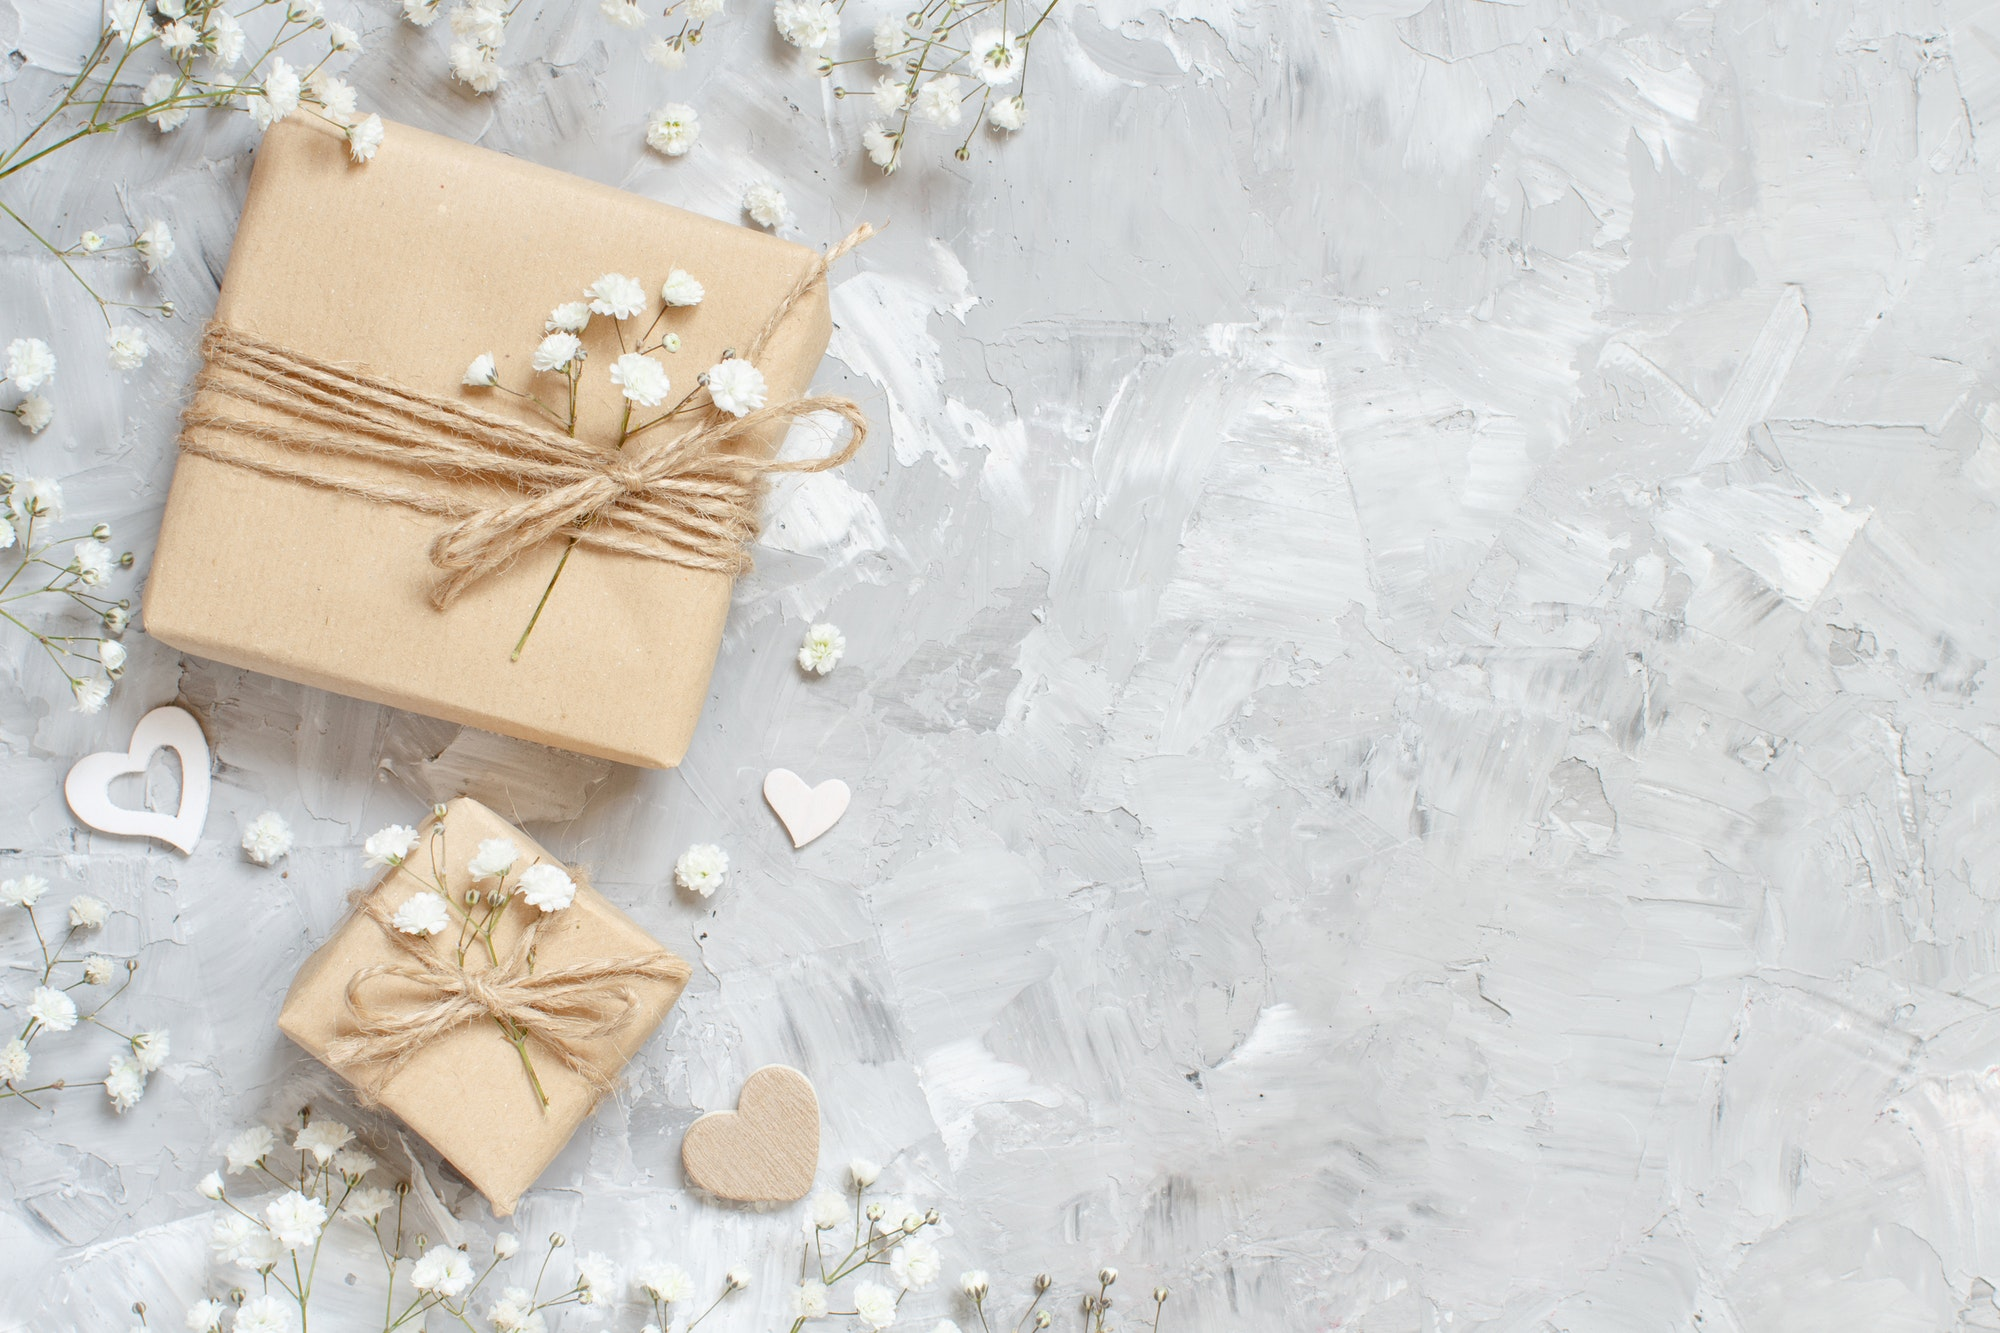 Gift boxes with small white flowers